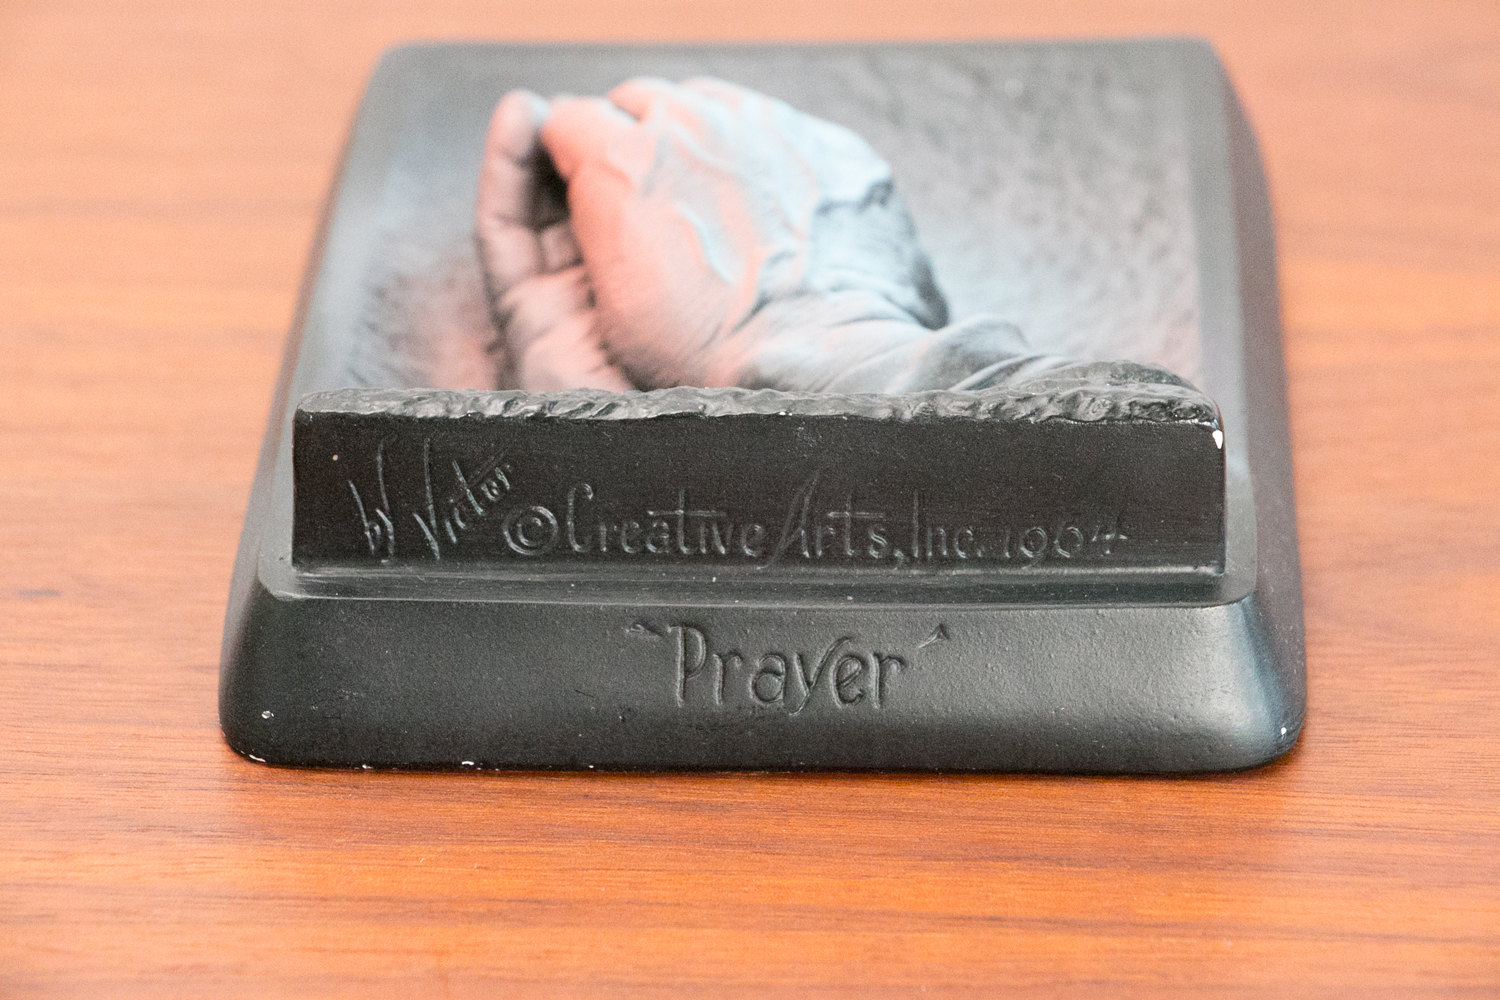 "Vintage Hanging Prayer Hands Sculpture / Plaque - by Victor - 1964, Creative Arts Inc - Turquoise, Pink/Salmon, & Black - 6"" Height - Kitsch"